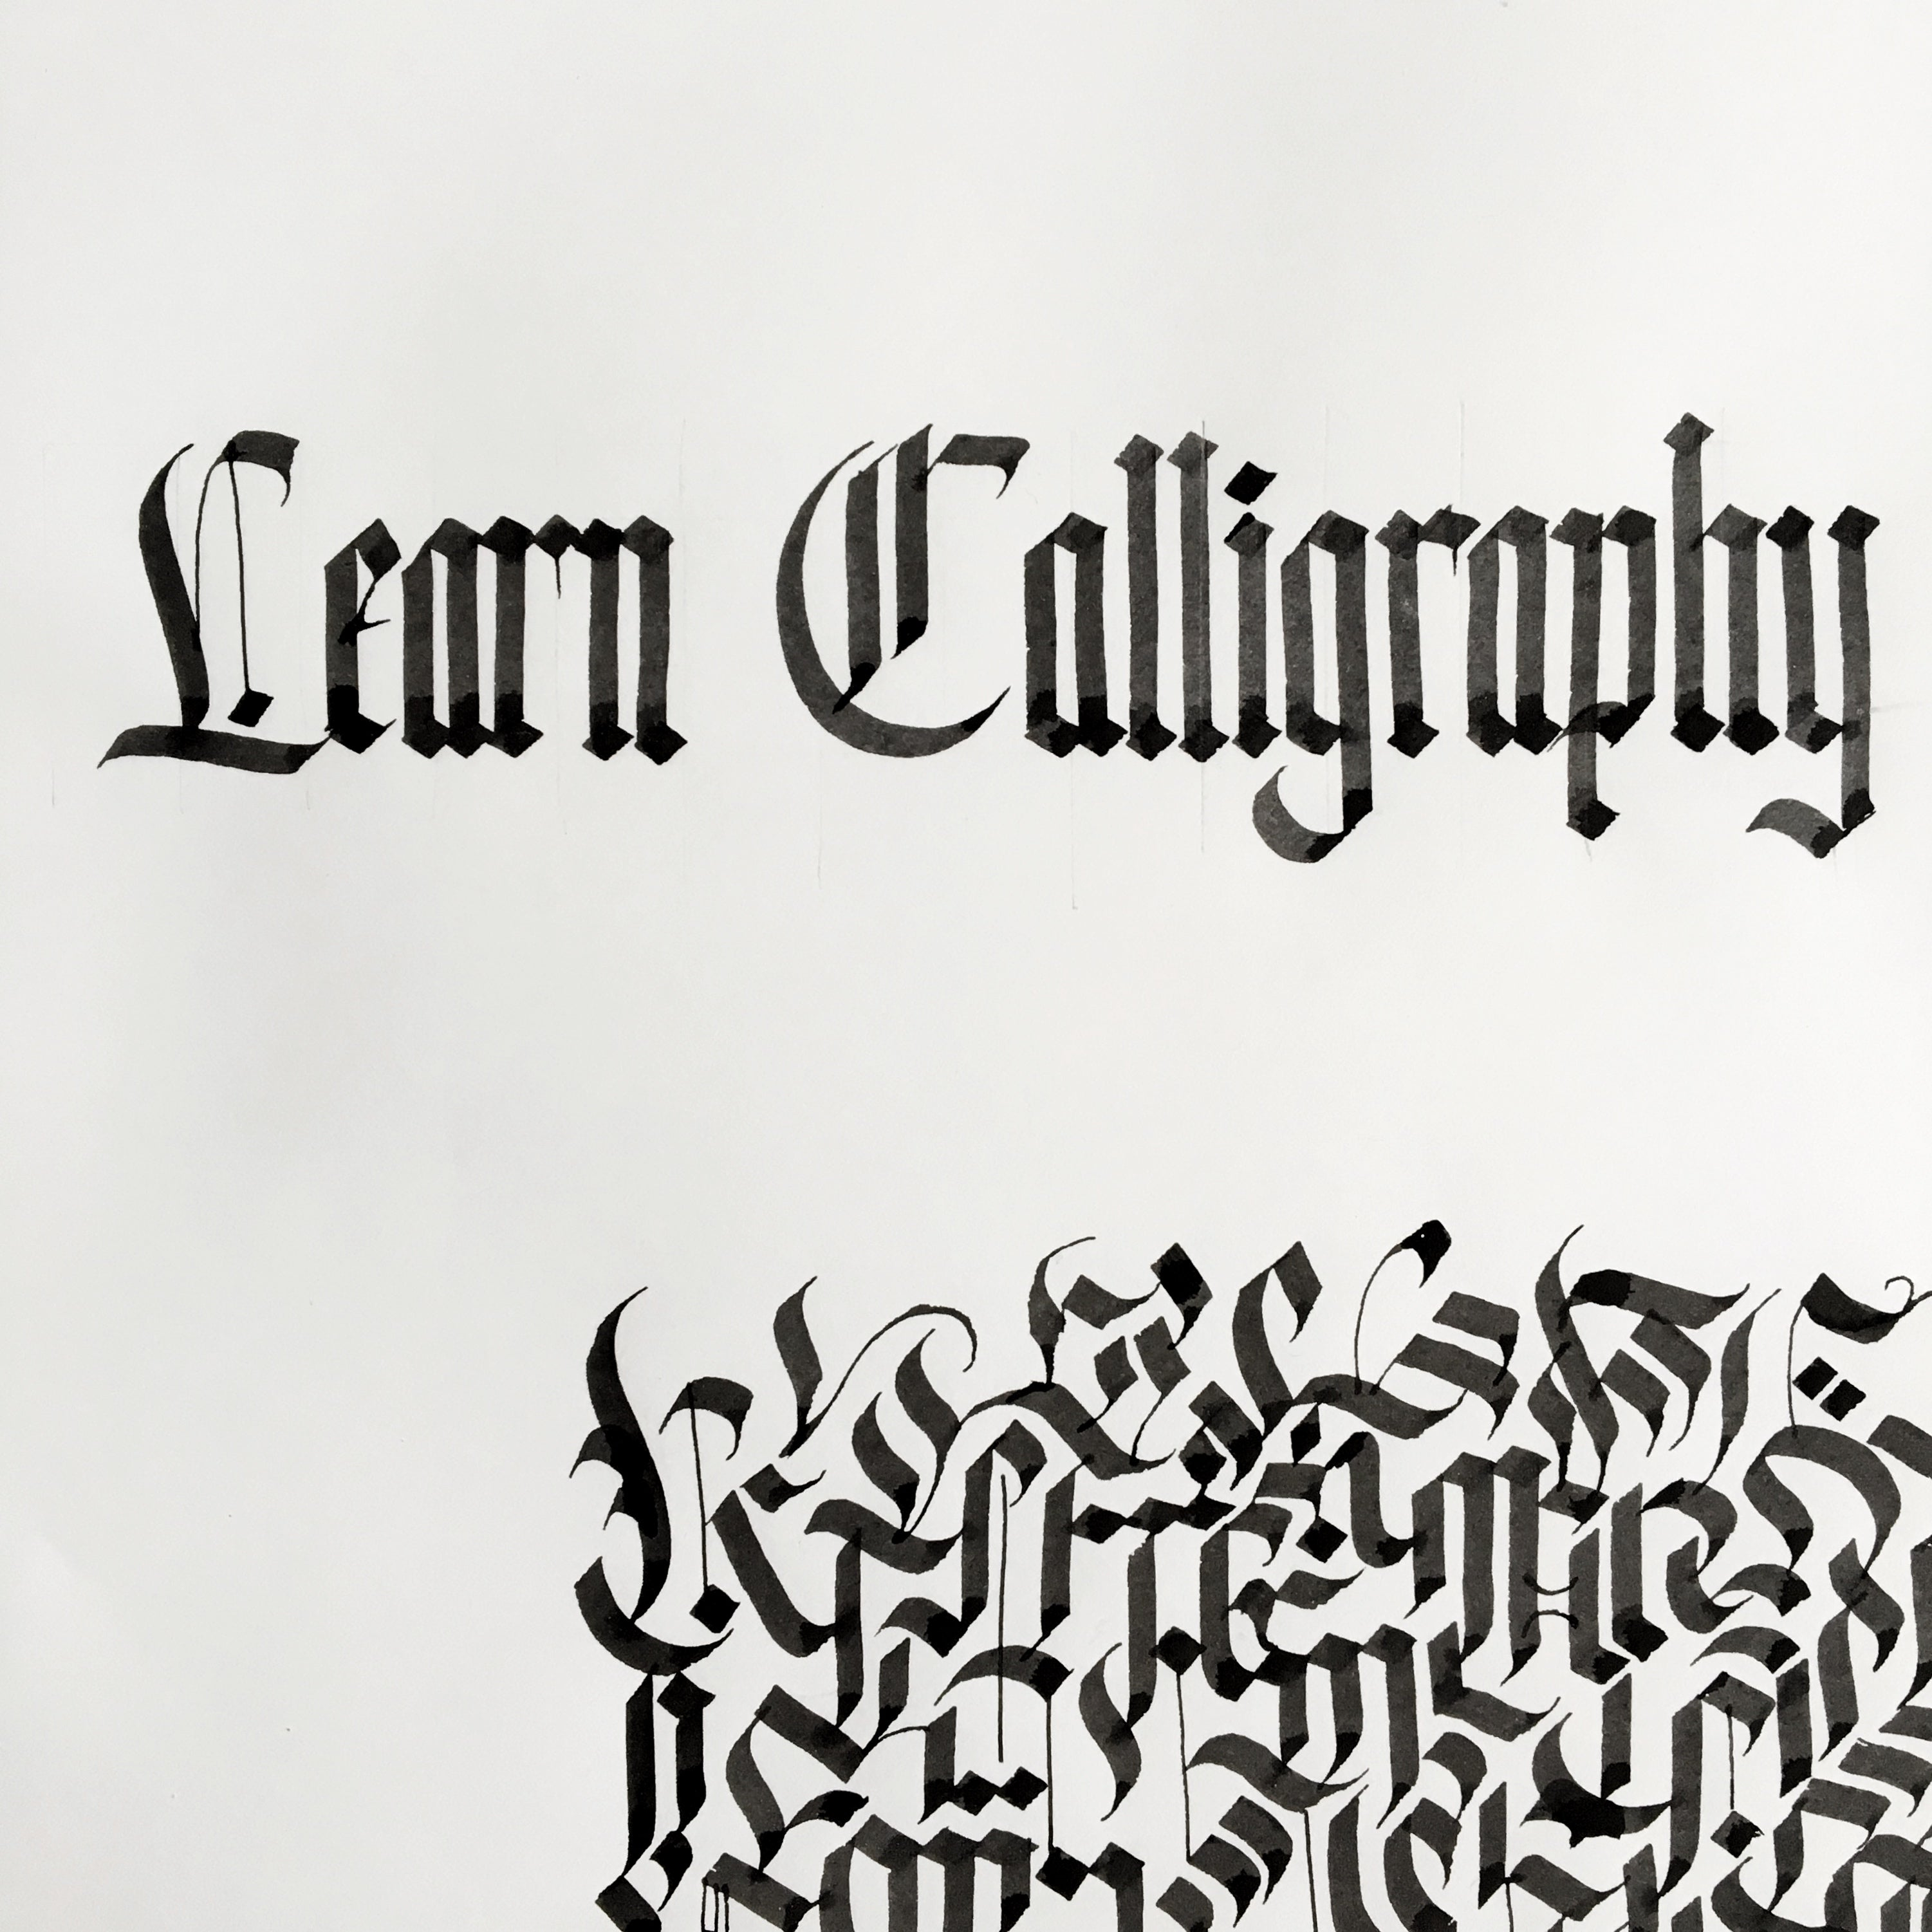 09/21 Calligraphy Workshop: Intro to Blackletter on Saturday September 21 at 10am